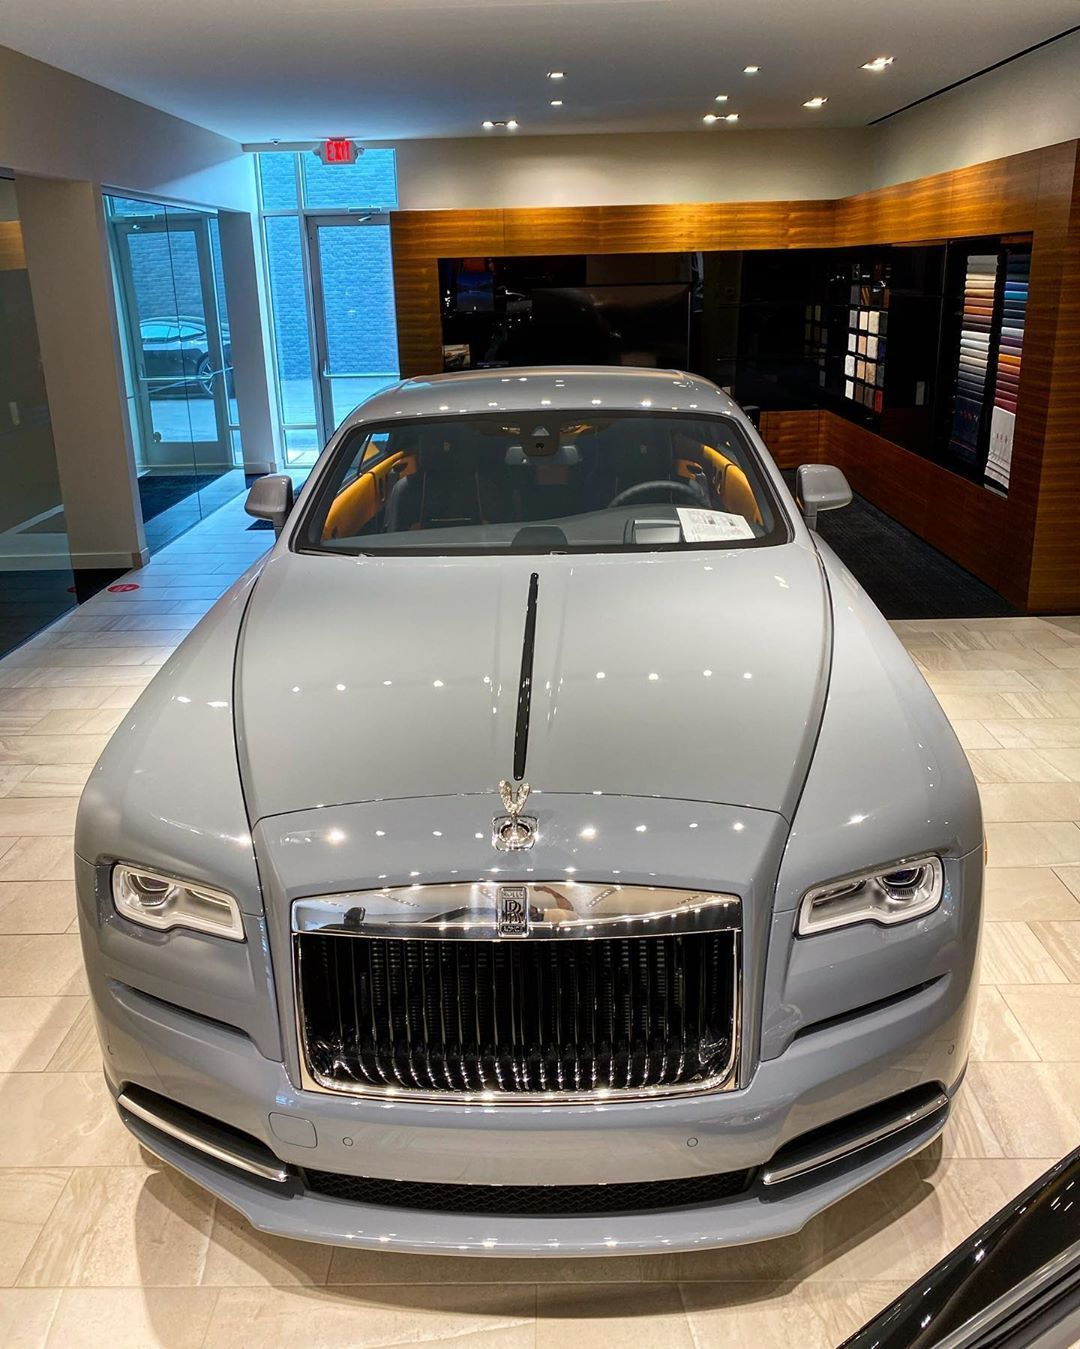 Rolls Royce Cleveland On Instagram Burnout Grey 2020 Rollsroyce Wraith Is This Your Favorite Rr Exterior Co In 2020 Rolls Royce New Rolls Royce Super Luxury Cars